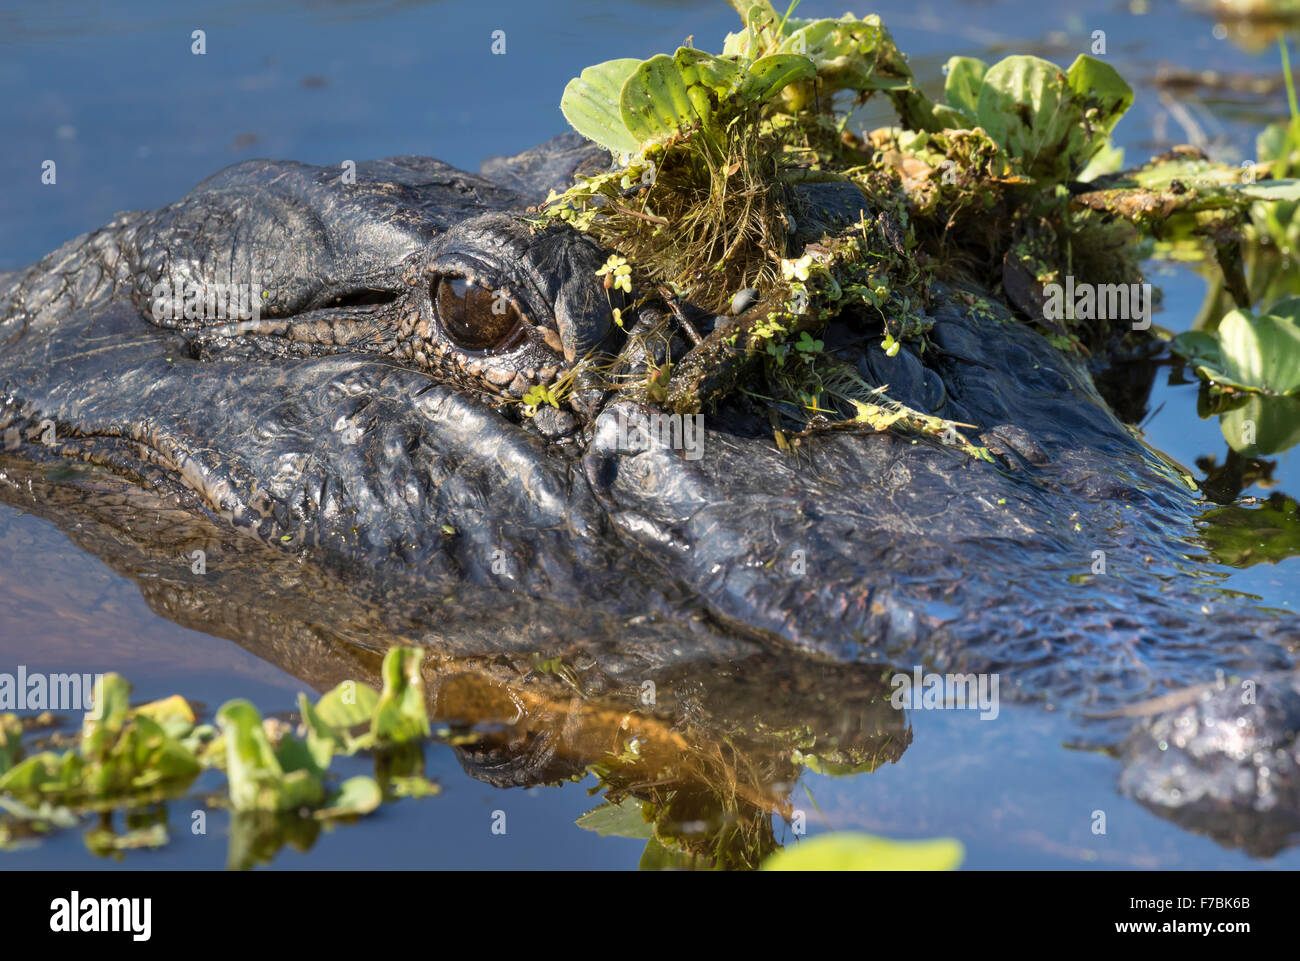 American alligator (Alligator mississippiensis) hiding in water weeds, Brazos Bend state park, Needville, Texas, - Stock Image